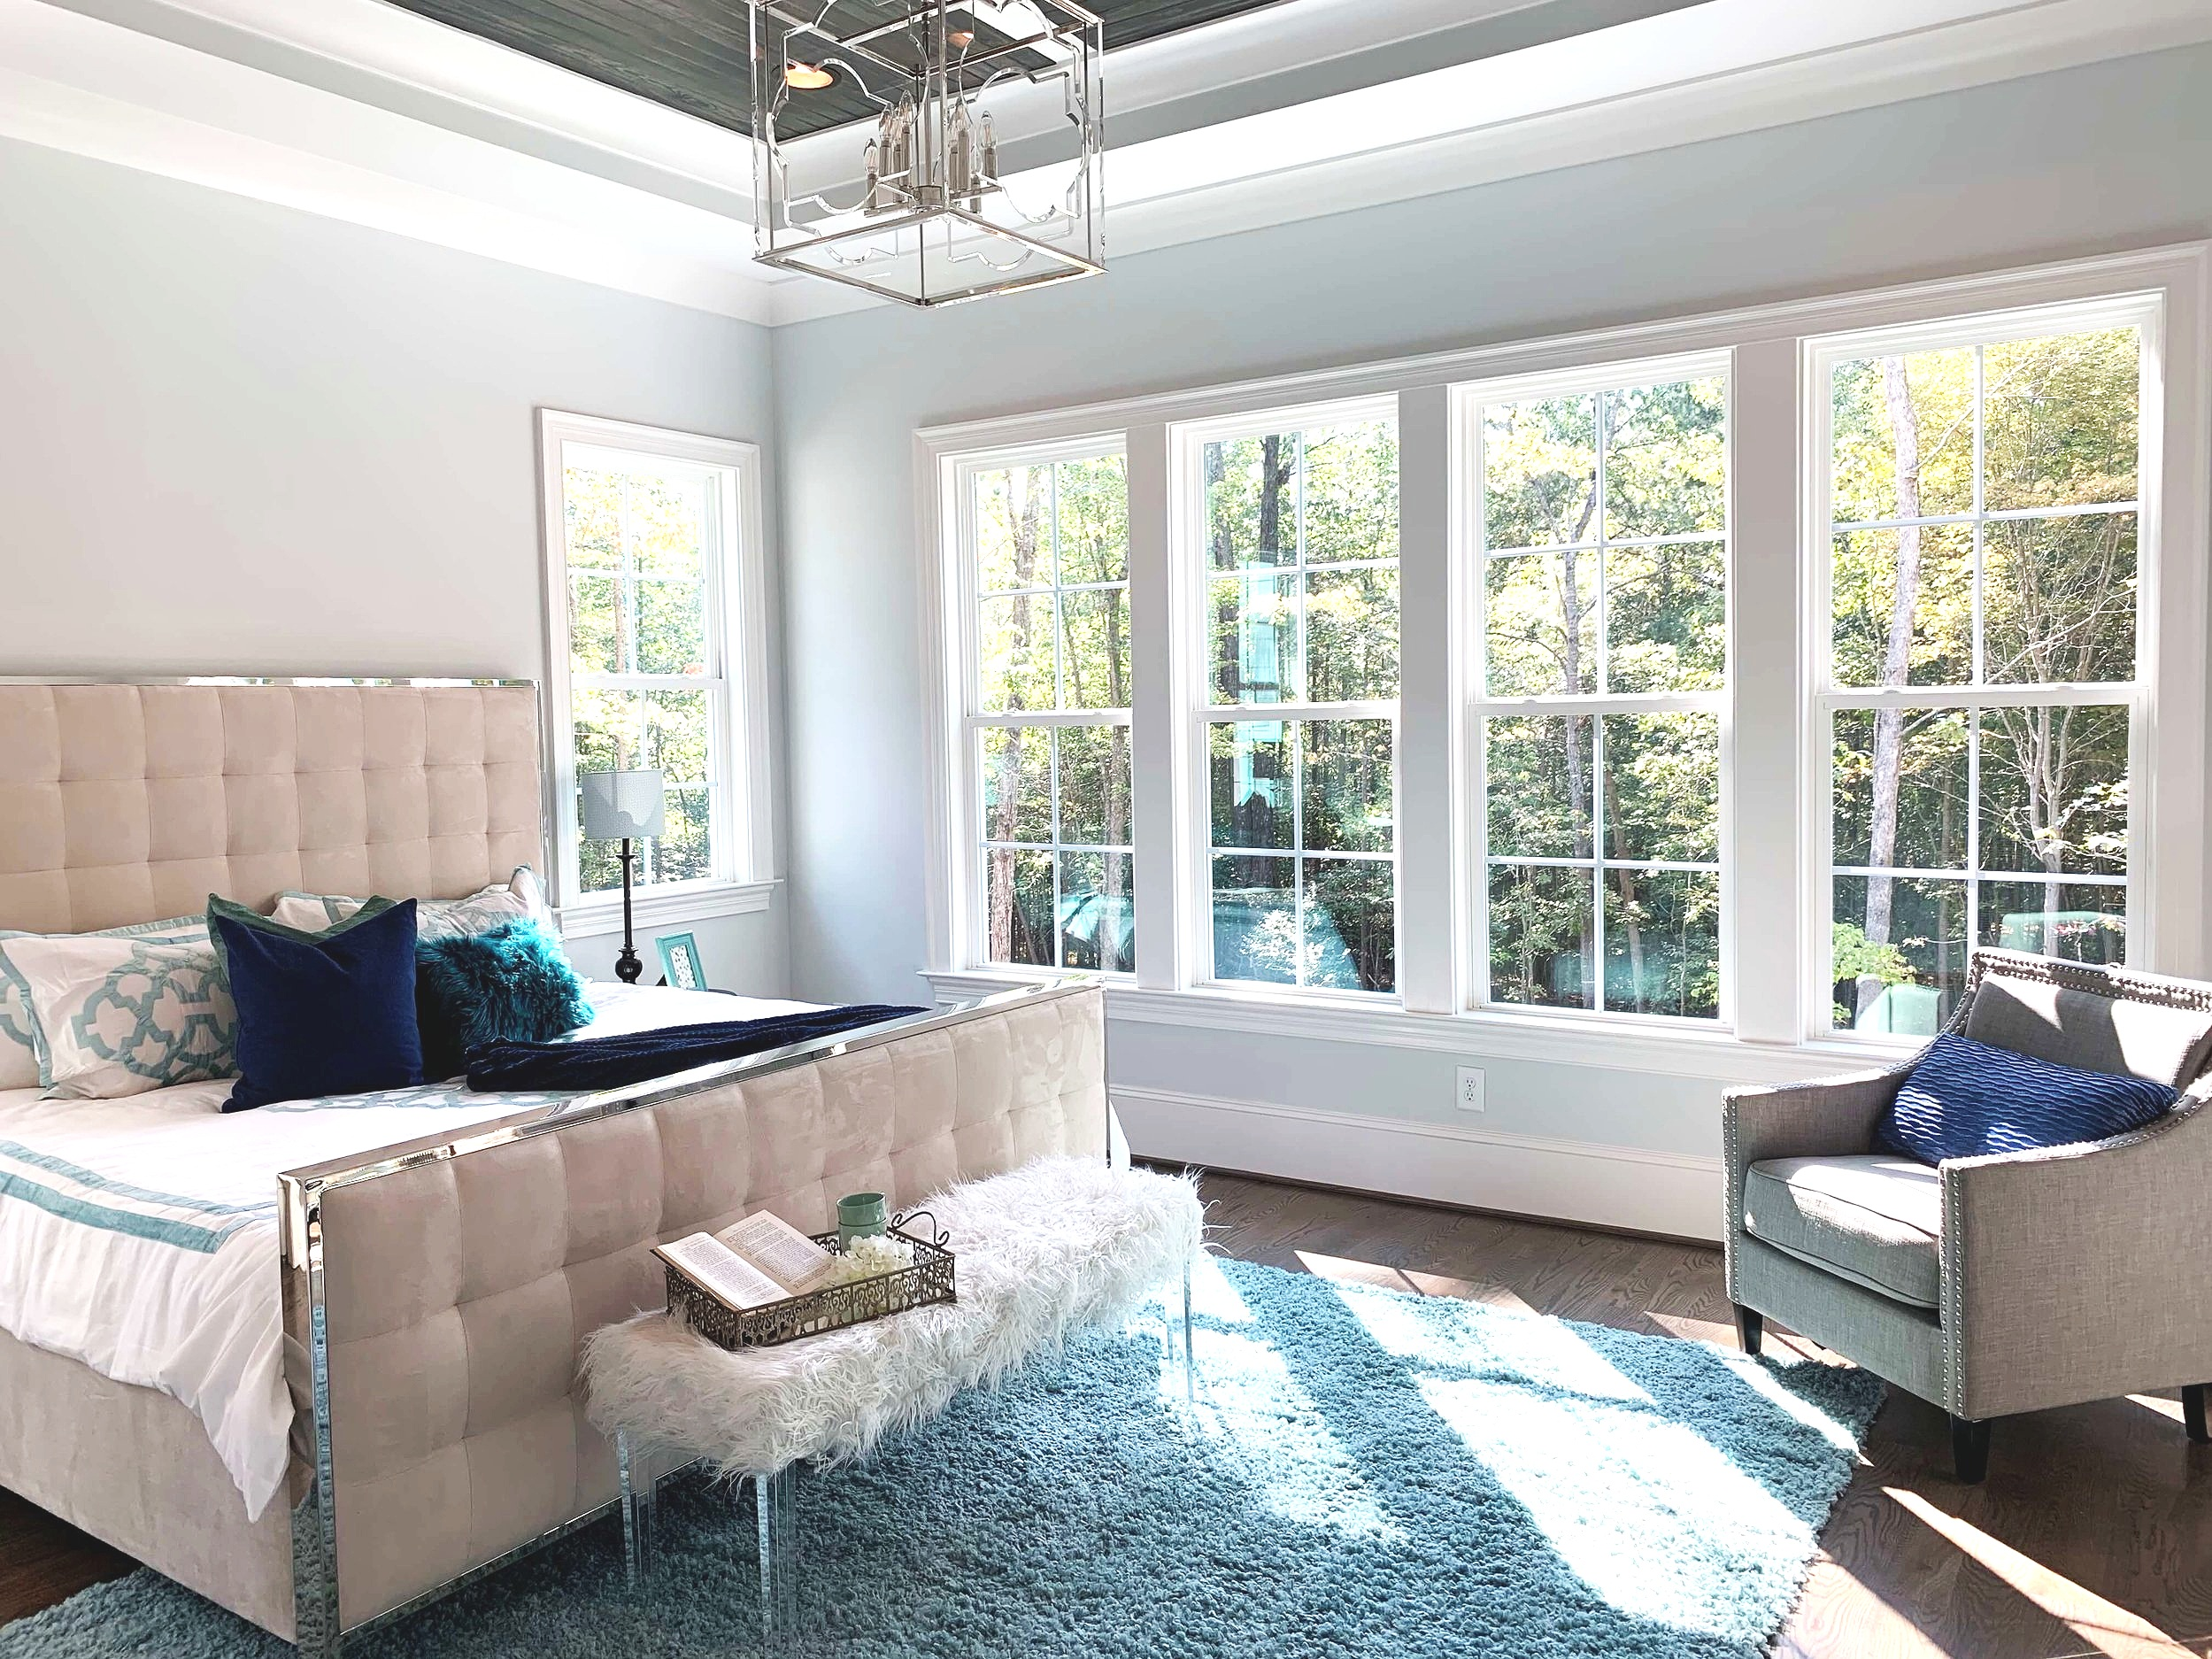 I use home tours as a way to update my supply of decorating ideas for design consultations in the greater Raleigh area.